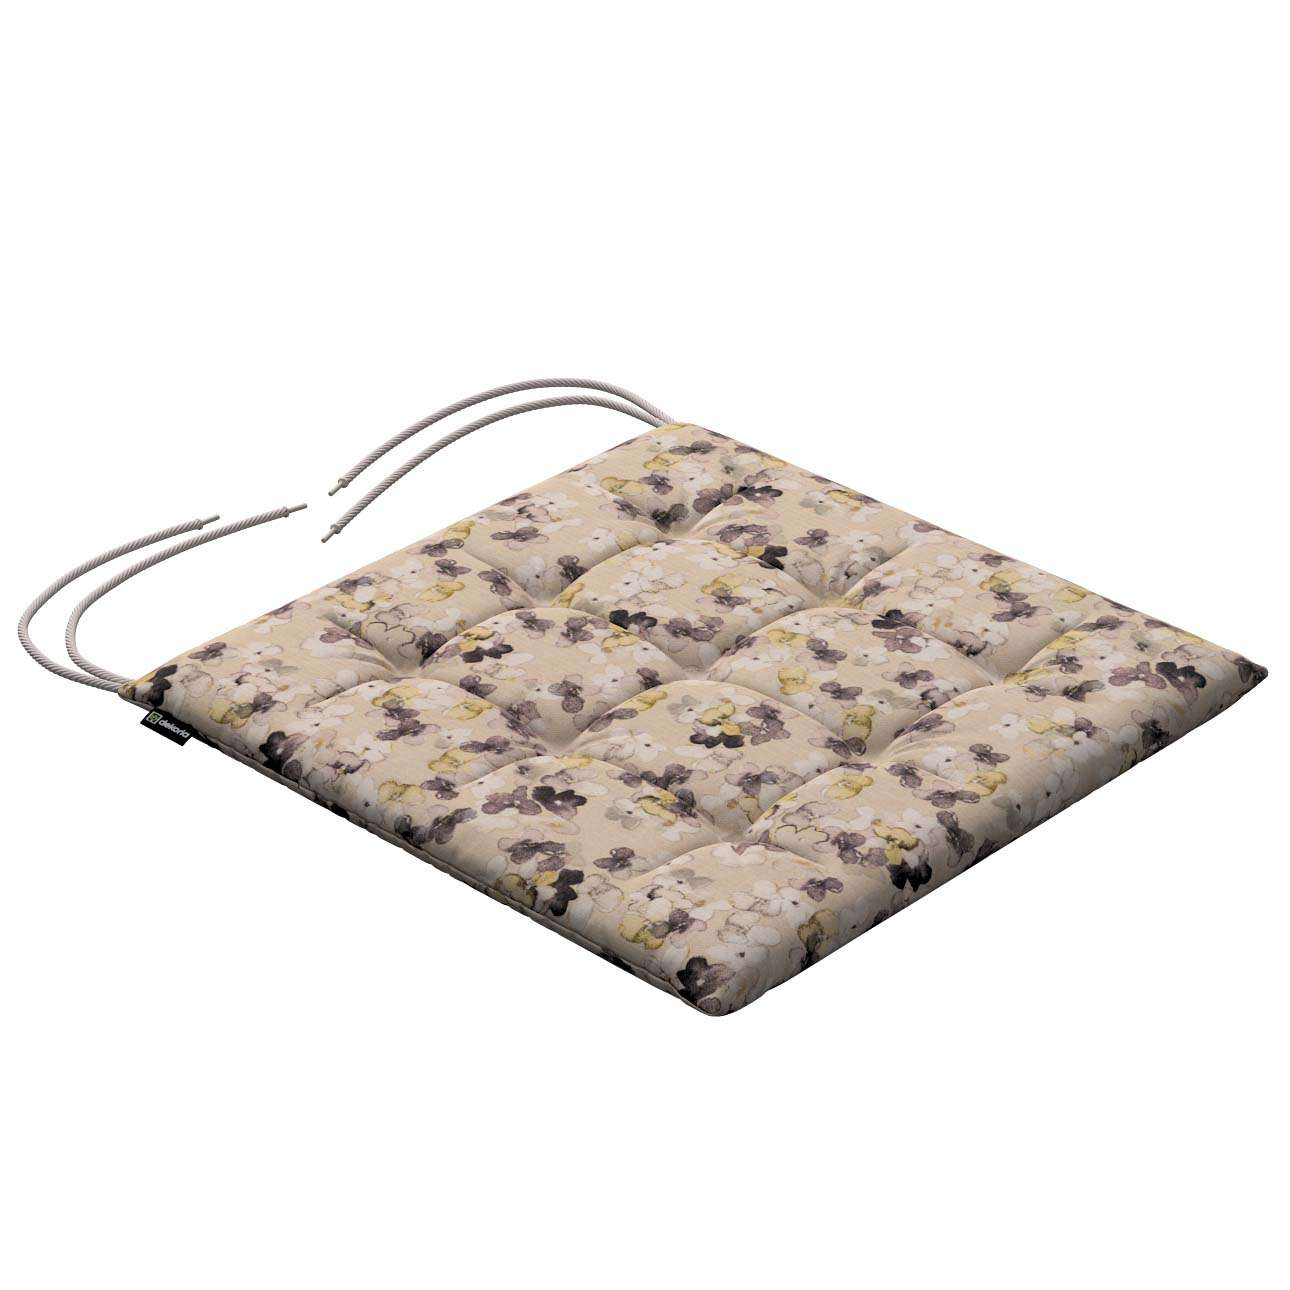 Karol seat pad with ties 40 x 40 x 3,5 cm (16 x 16 x1,5 inch) in collection Londres, fabric: 140-48